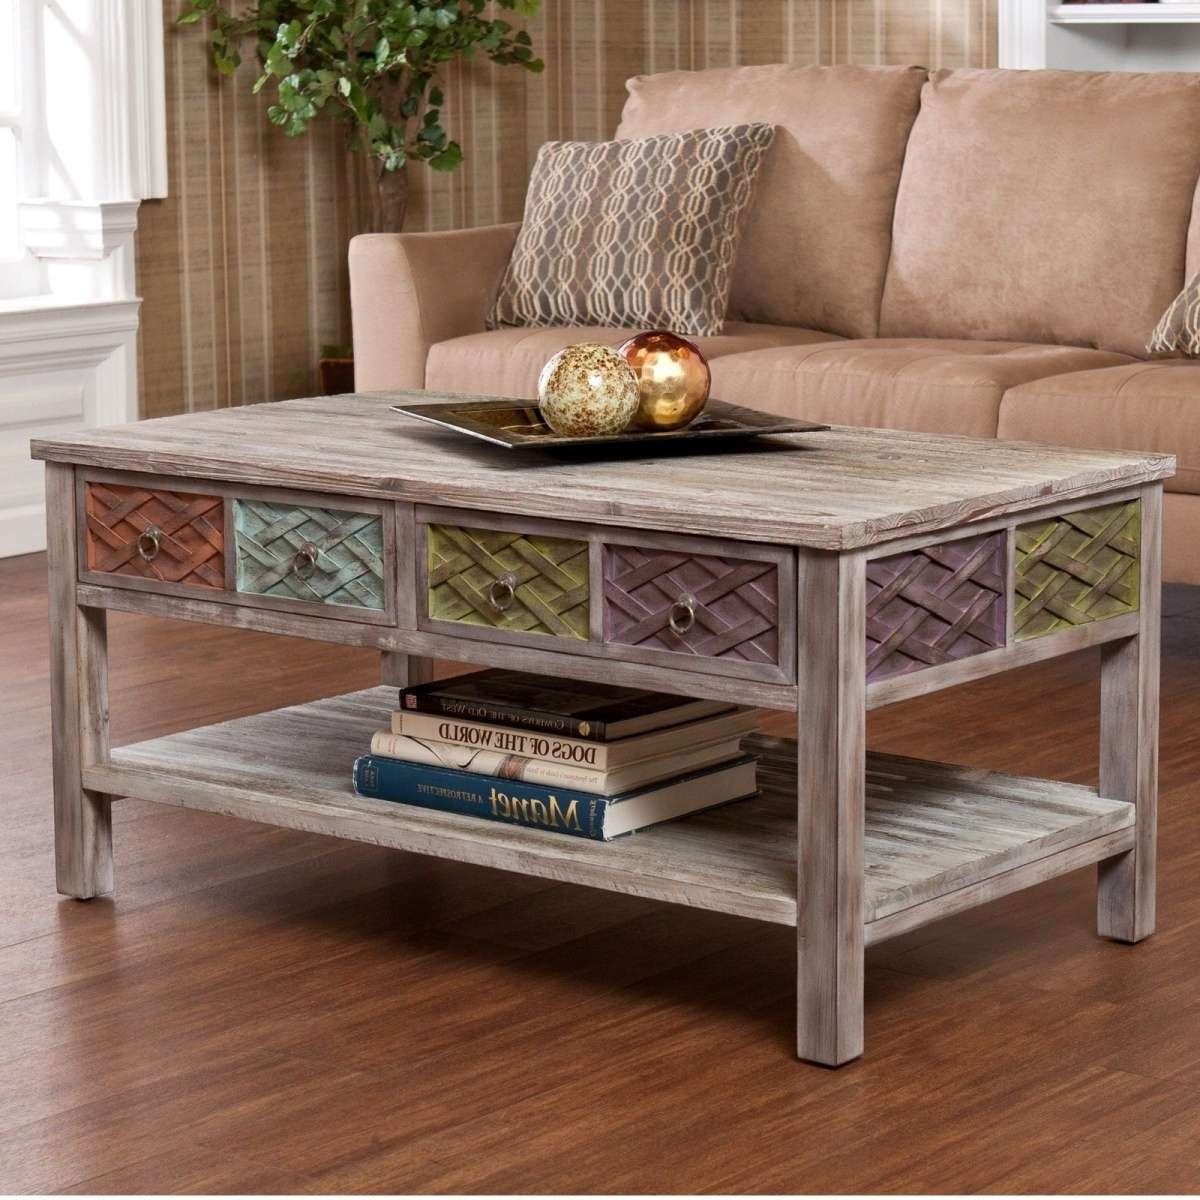 Coffee Table: Glamorous Ideas Of Coffee Table For Small Spaces For Most Recent Space Coffee Tables (View 6 of 20)